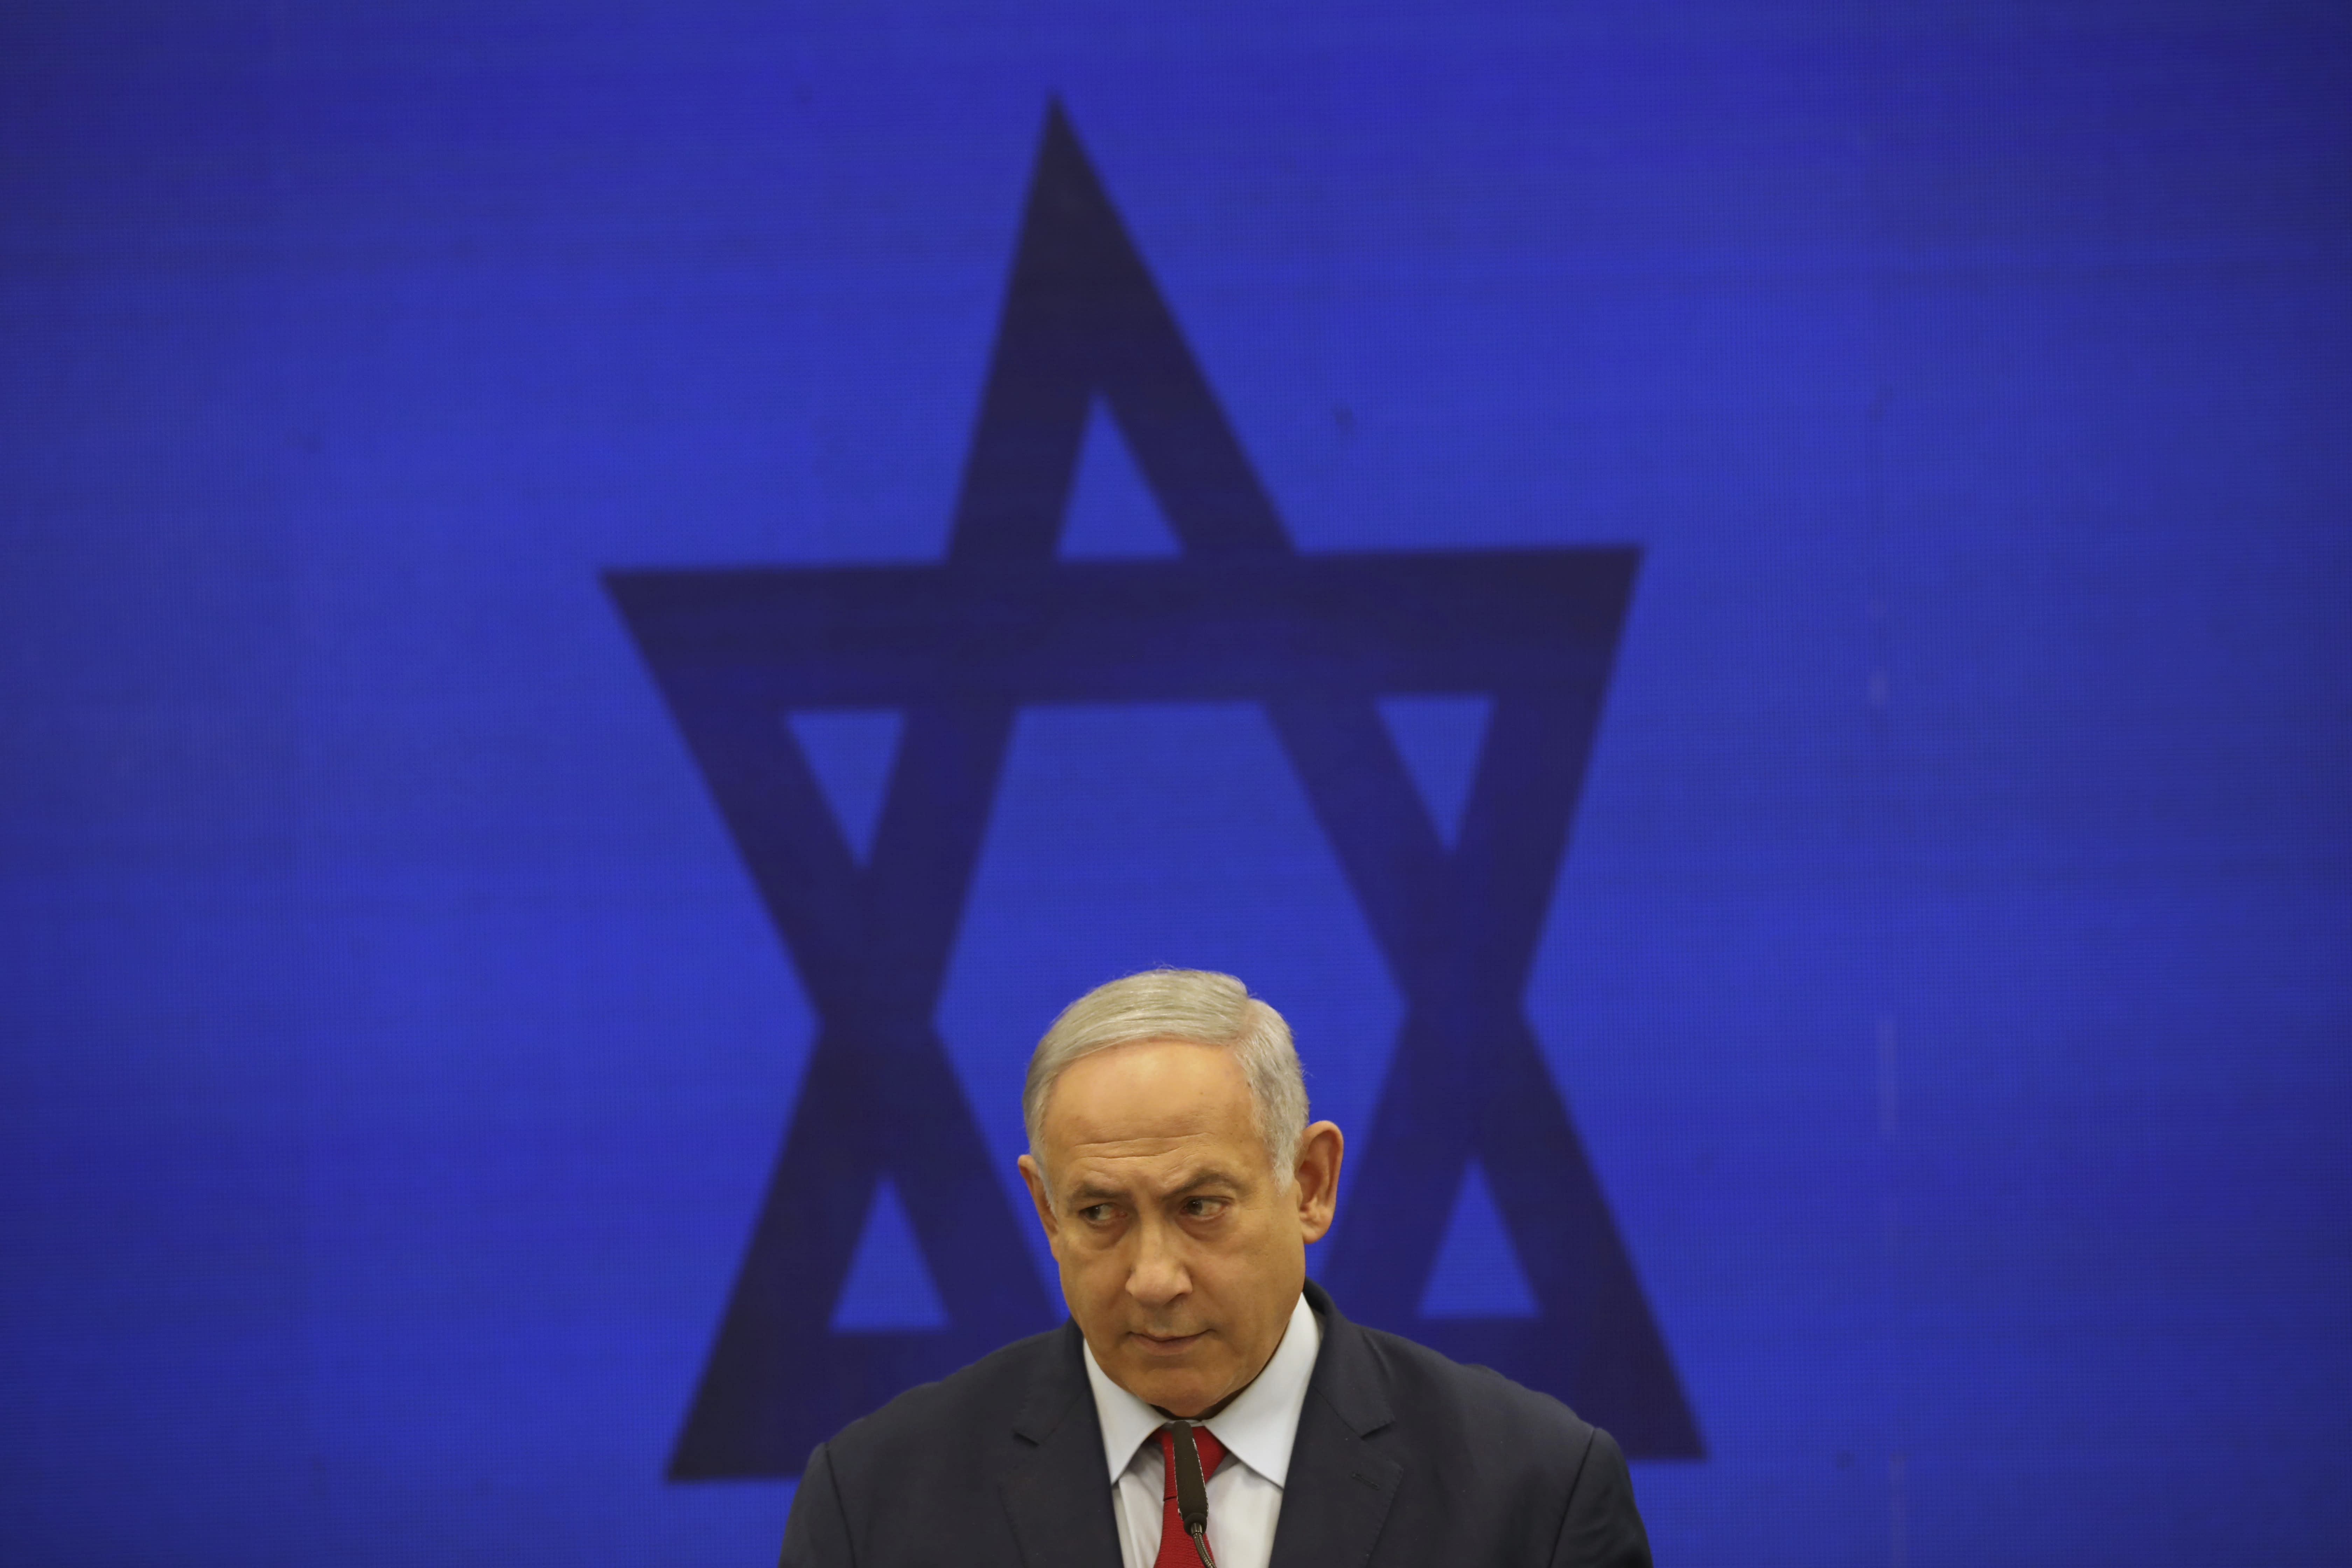 Israeli Attorney General Indicts Netanyahu On Bribery, Breaching of Public Trust